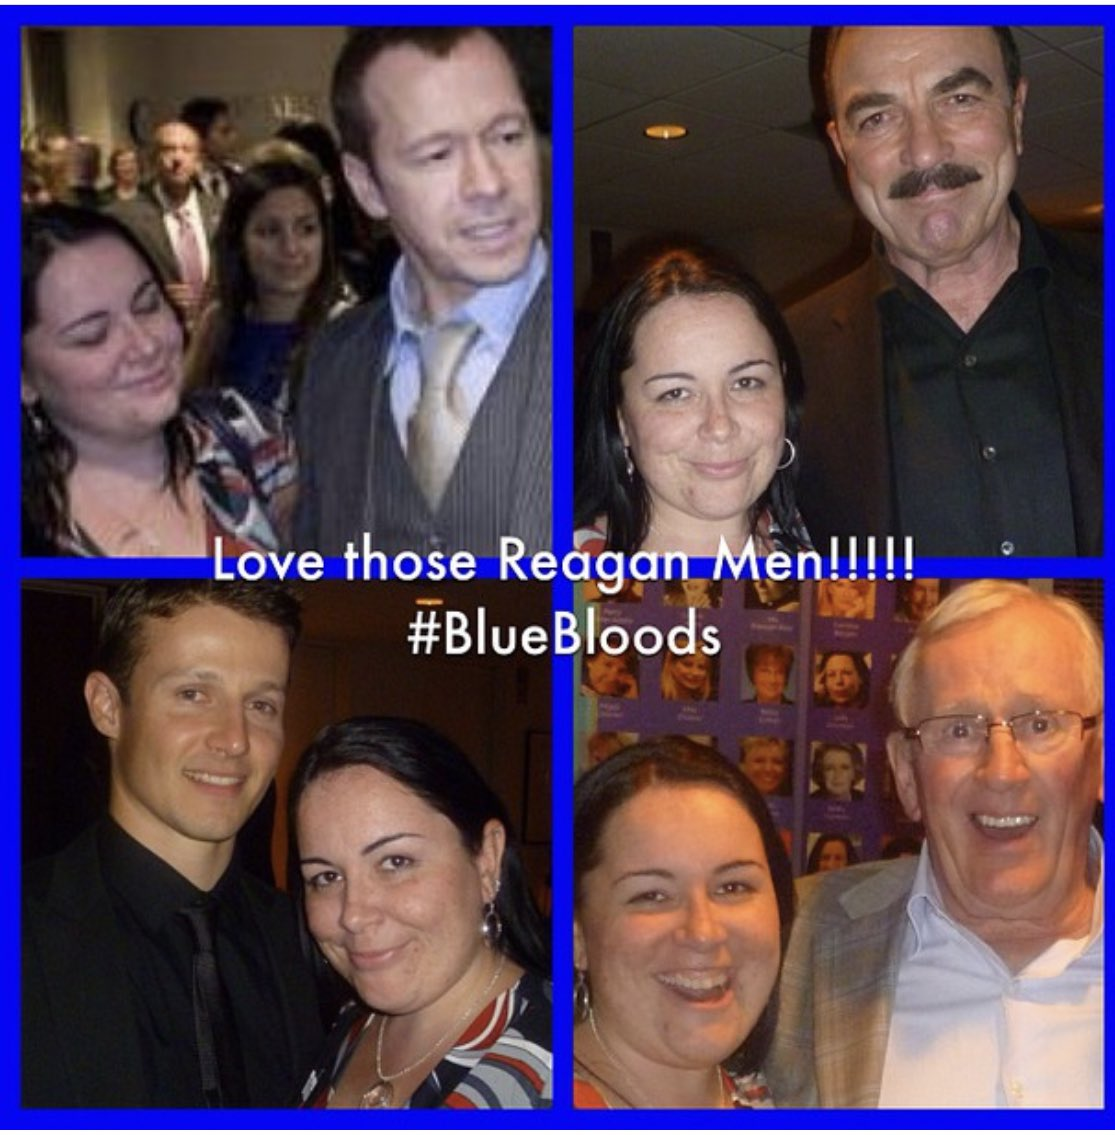 No idea where a decade has gone but @DonnieWahlberg thanks for creating these moments & memories even when I told you I need you to introduce us to Tom cause he scared me 😂 I treasure these always #BlueBloods @WillEstes101 @paleycenter https://t.co/5eIFlu2jrA